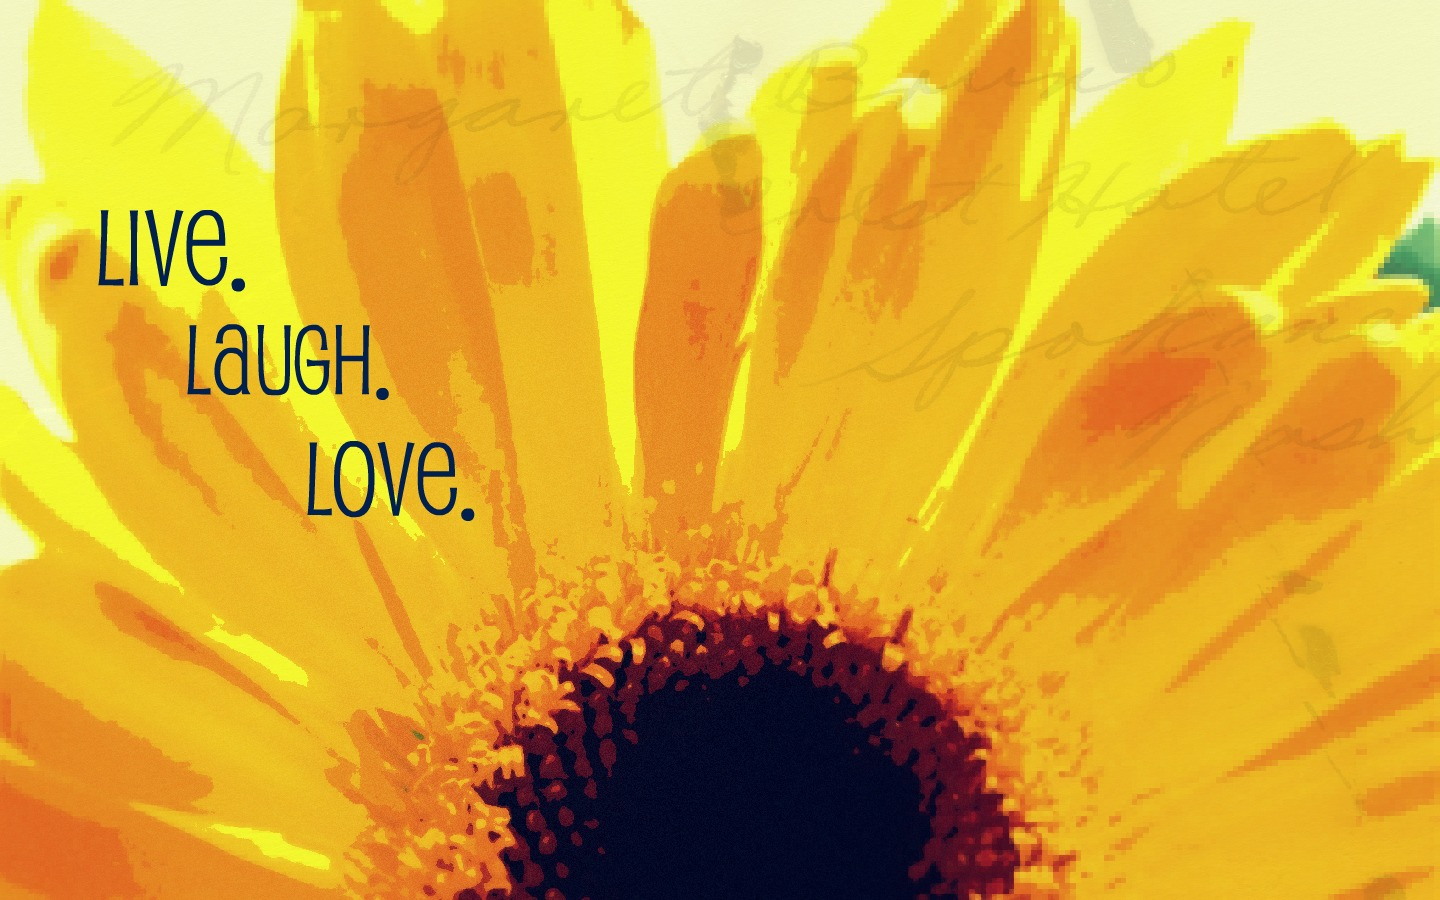 Live Laugh Love Hd Wallpaper : Live Love Laugh Wallpaper - WallpaperSafari